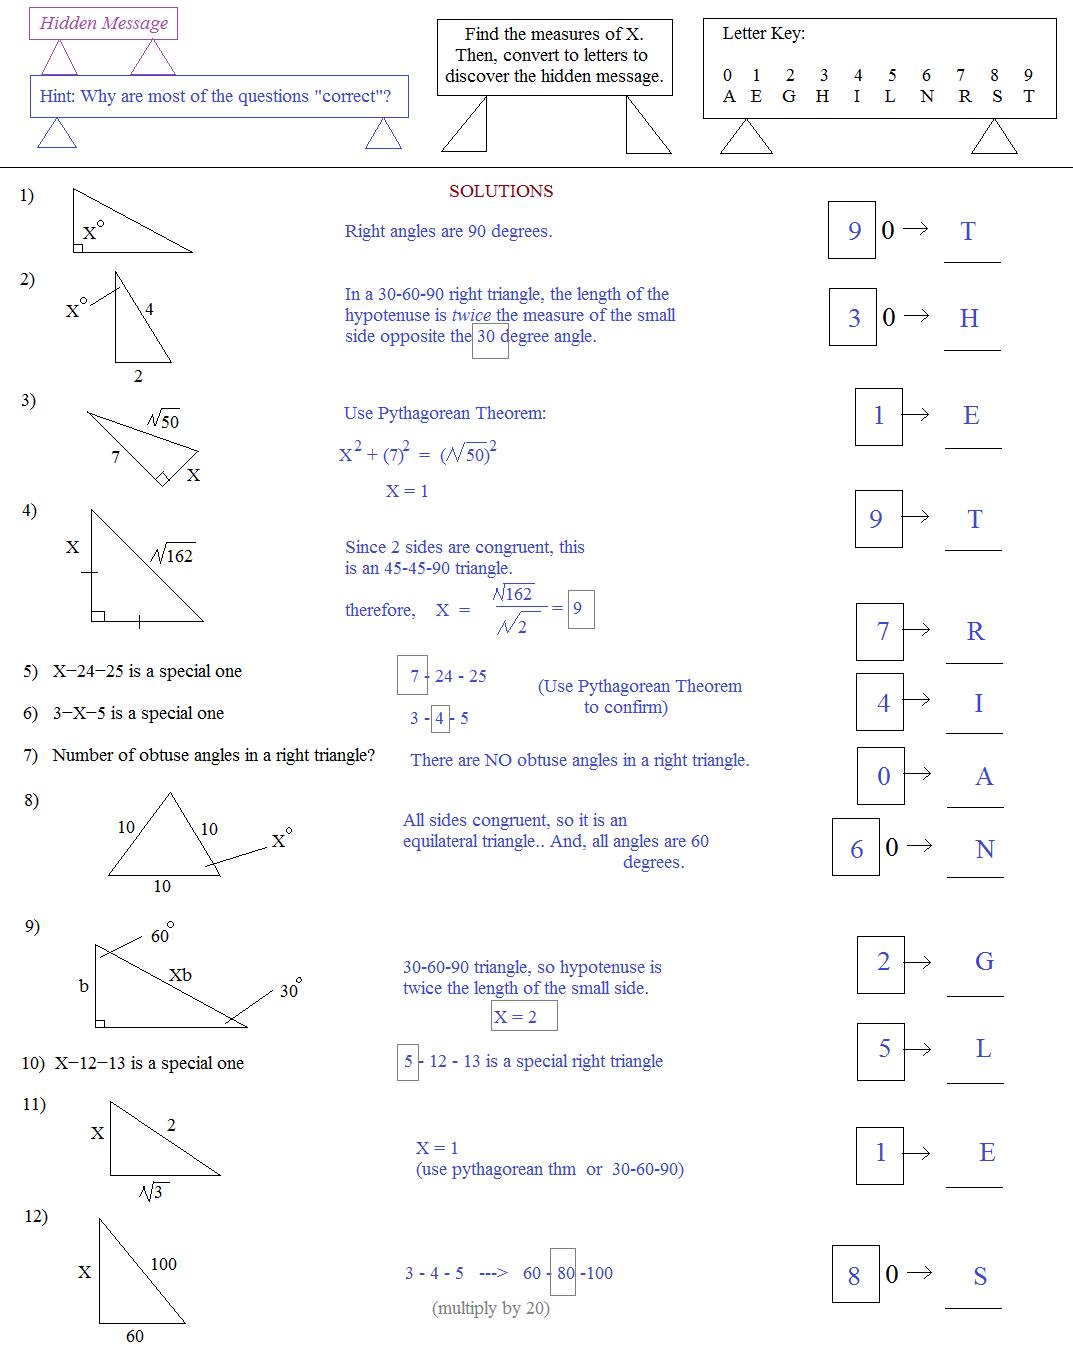 worksheet Pythagorean Theorem Puzzle Worksheet math plane right triangle review hidden message puzzle triangles solutions